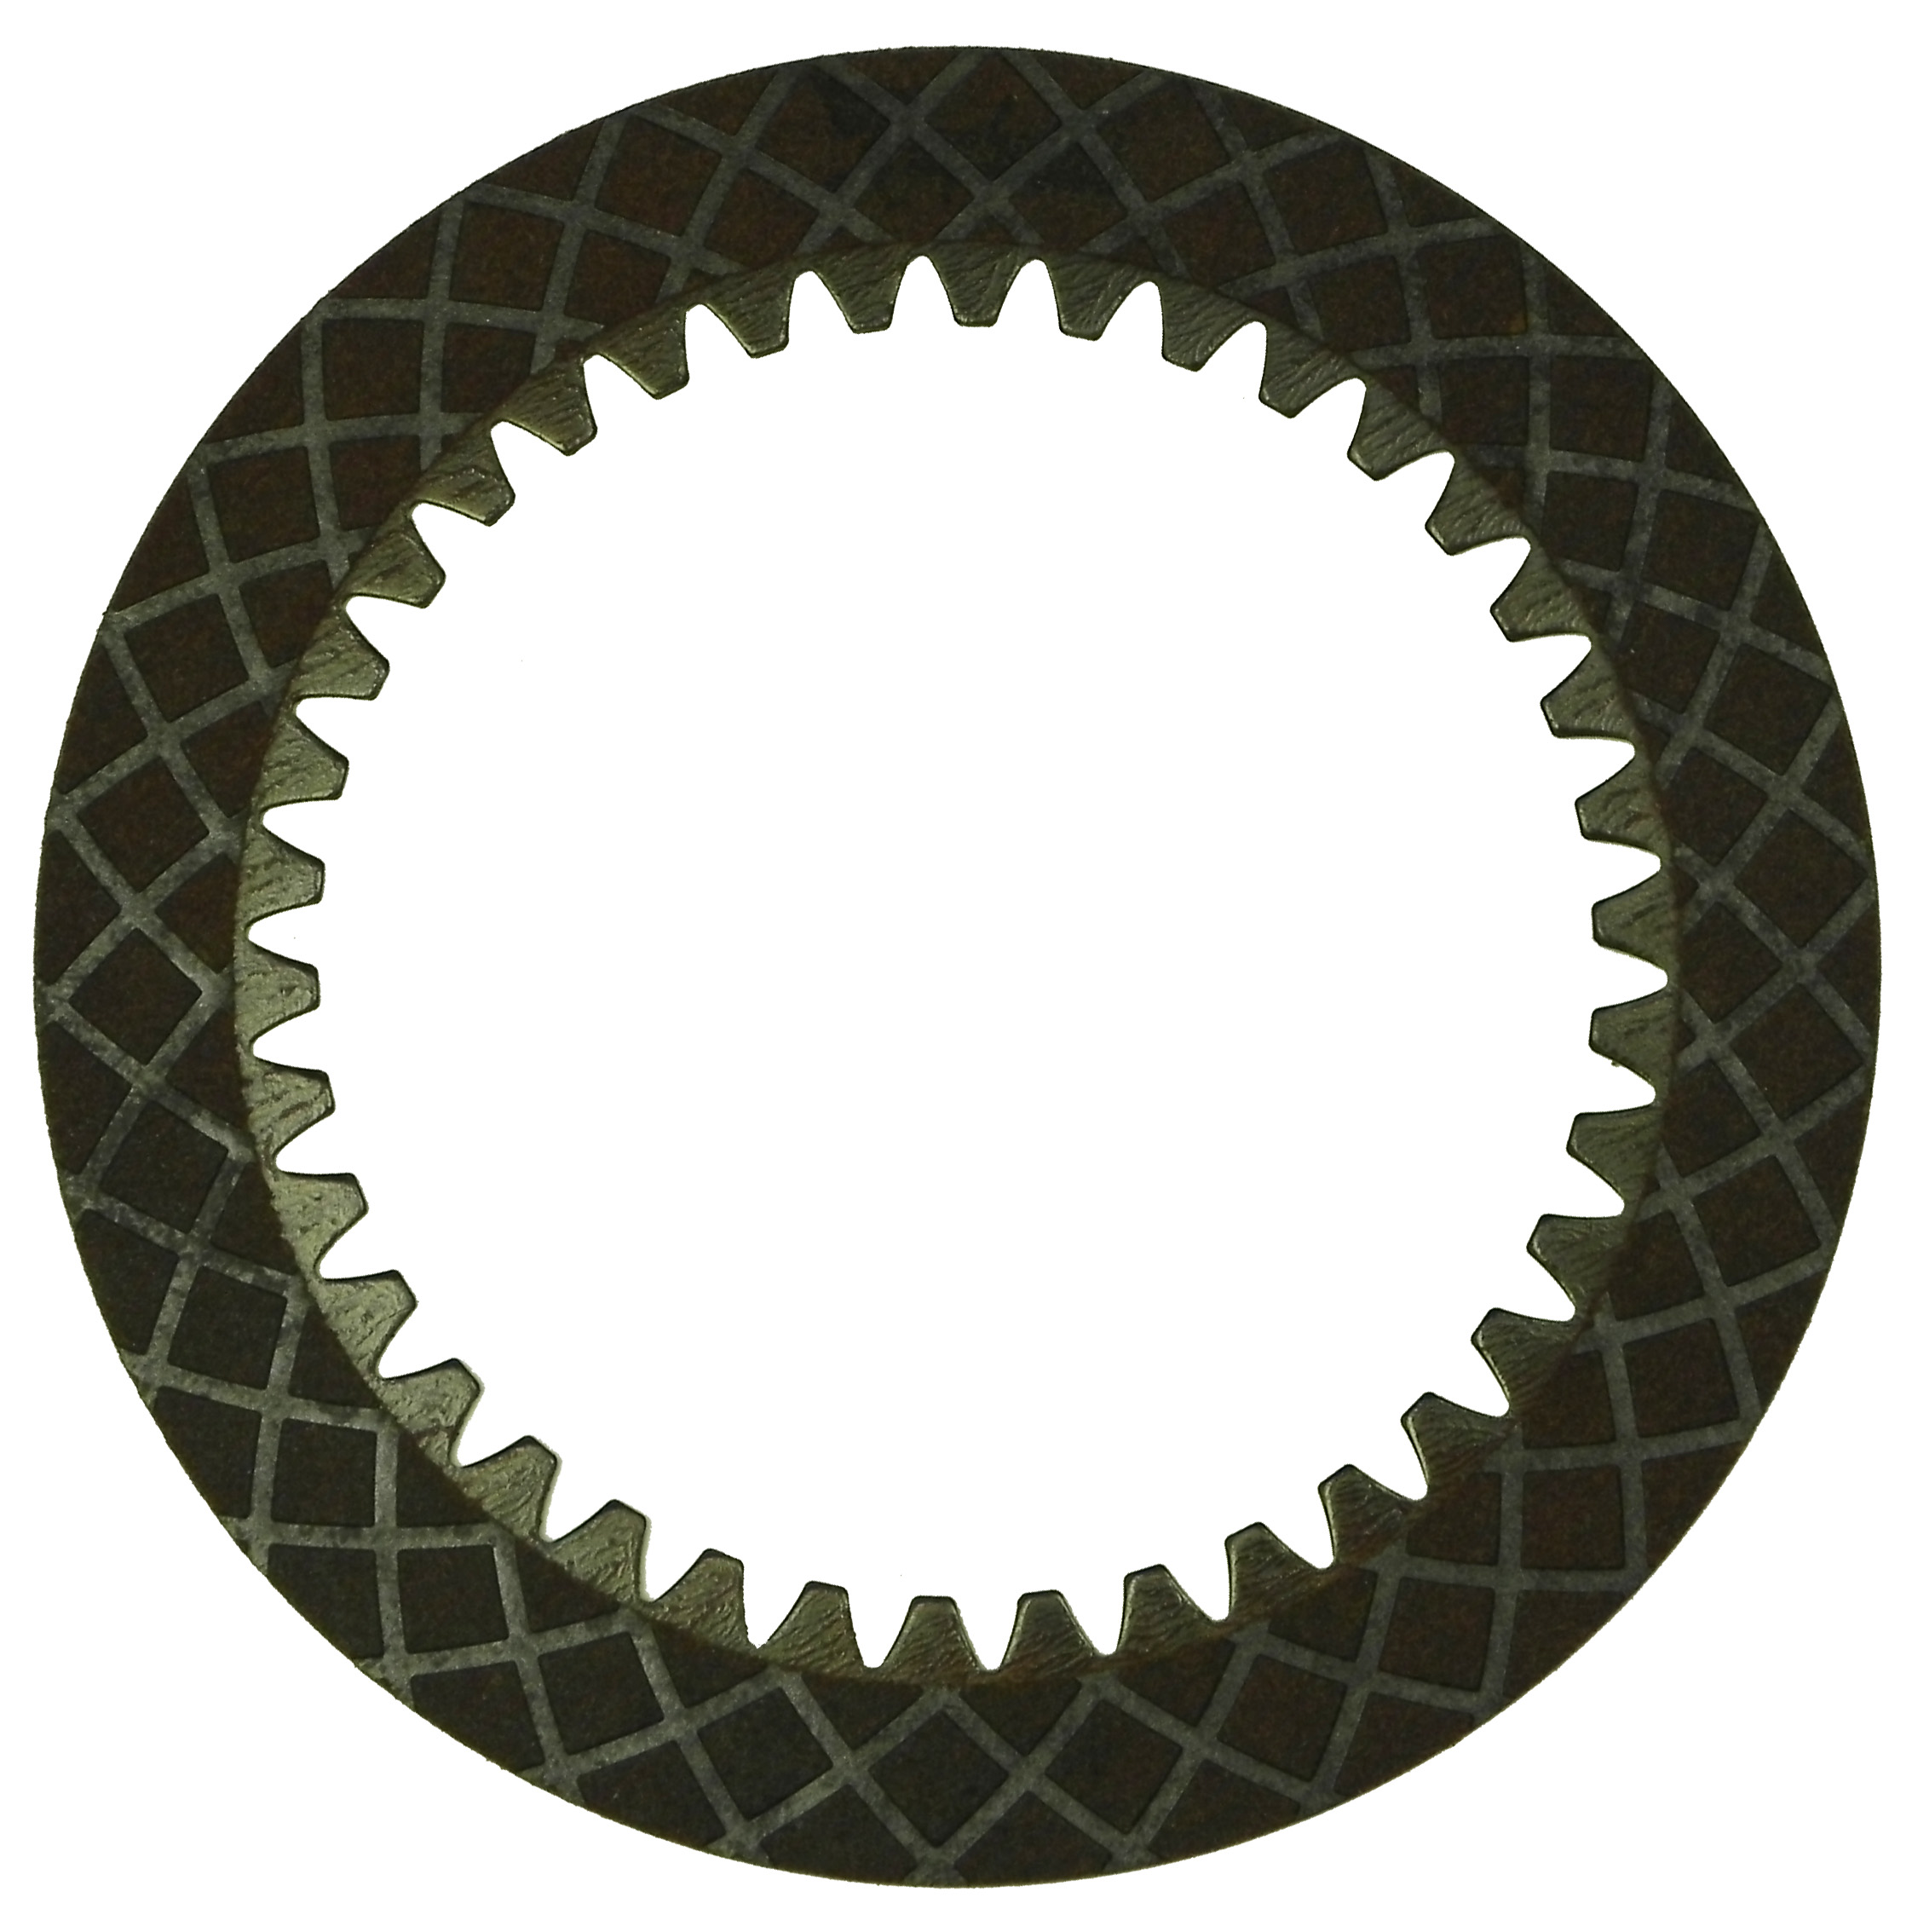 R571800 | 2006-2009 Friction Clutch Plate GPX Low GPX SPCA